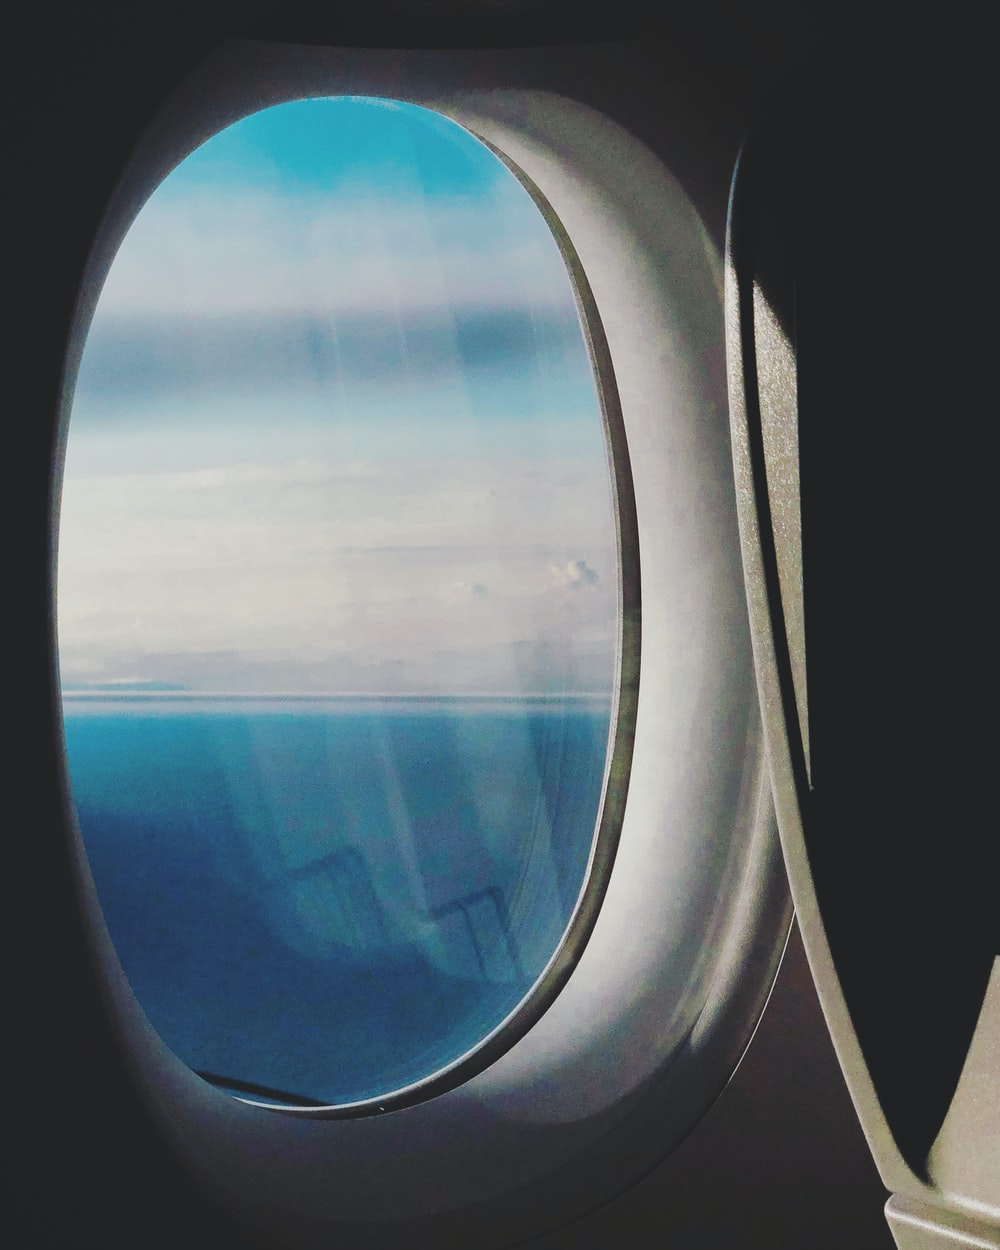 airliner photography